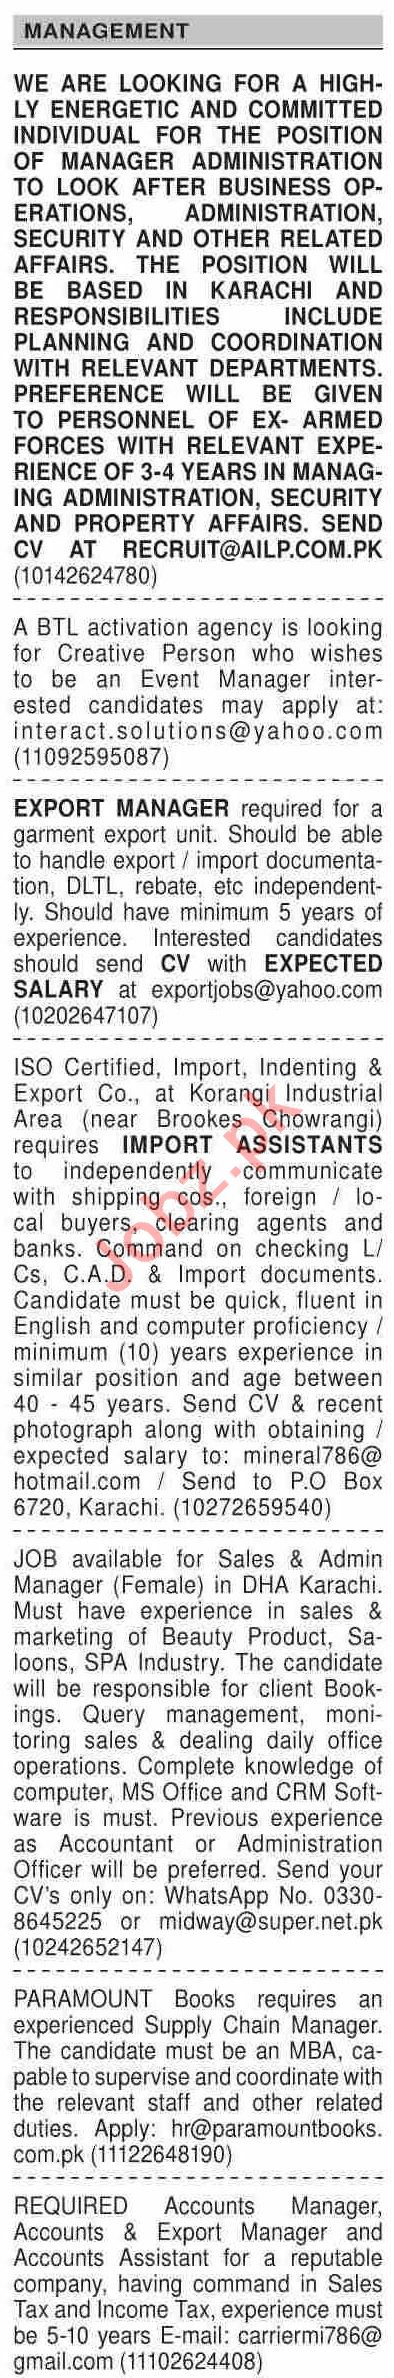 Dawn Sunday Classified Ads 13 Dec 2020 for Management Staff